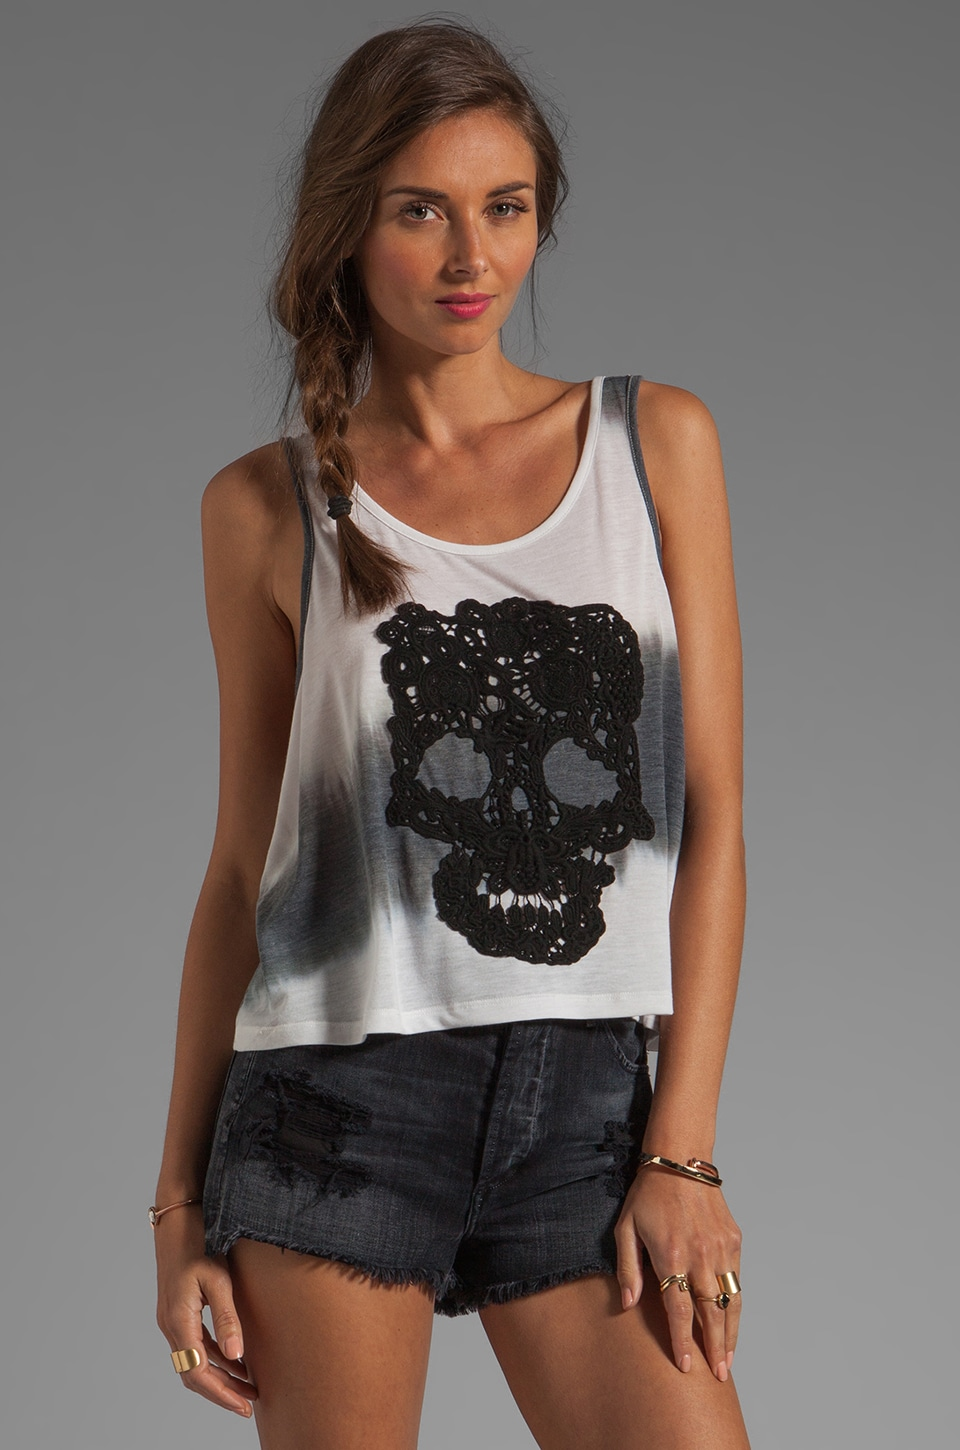 Gypsy Junkies Slouch Tank in Black Tie Dye